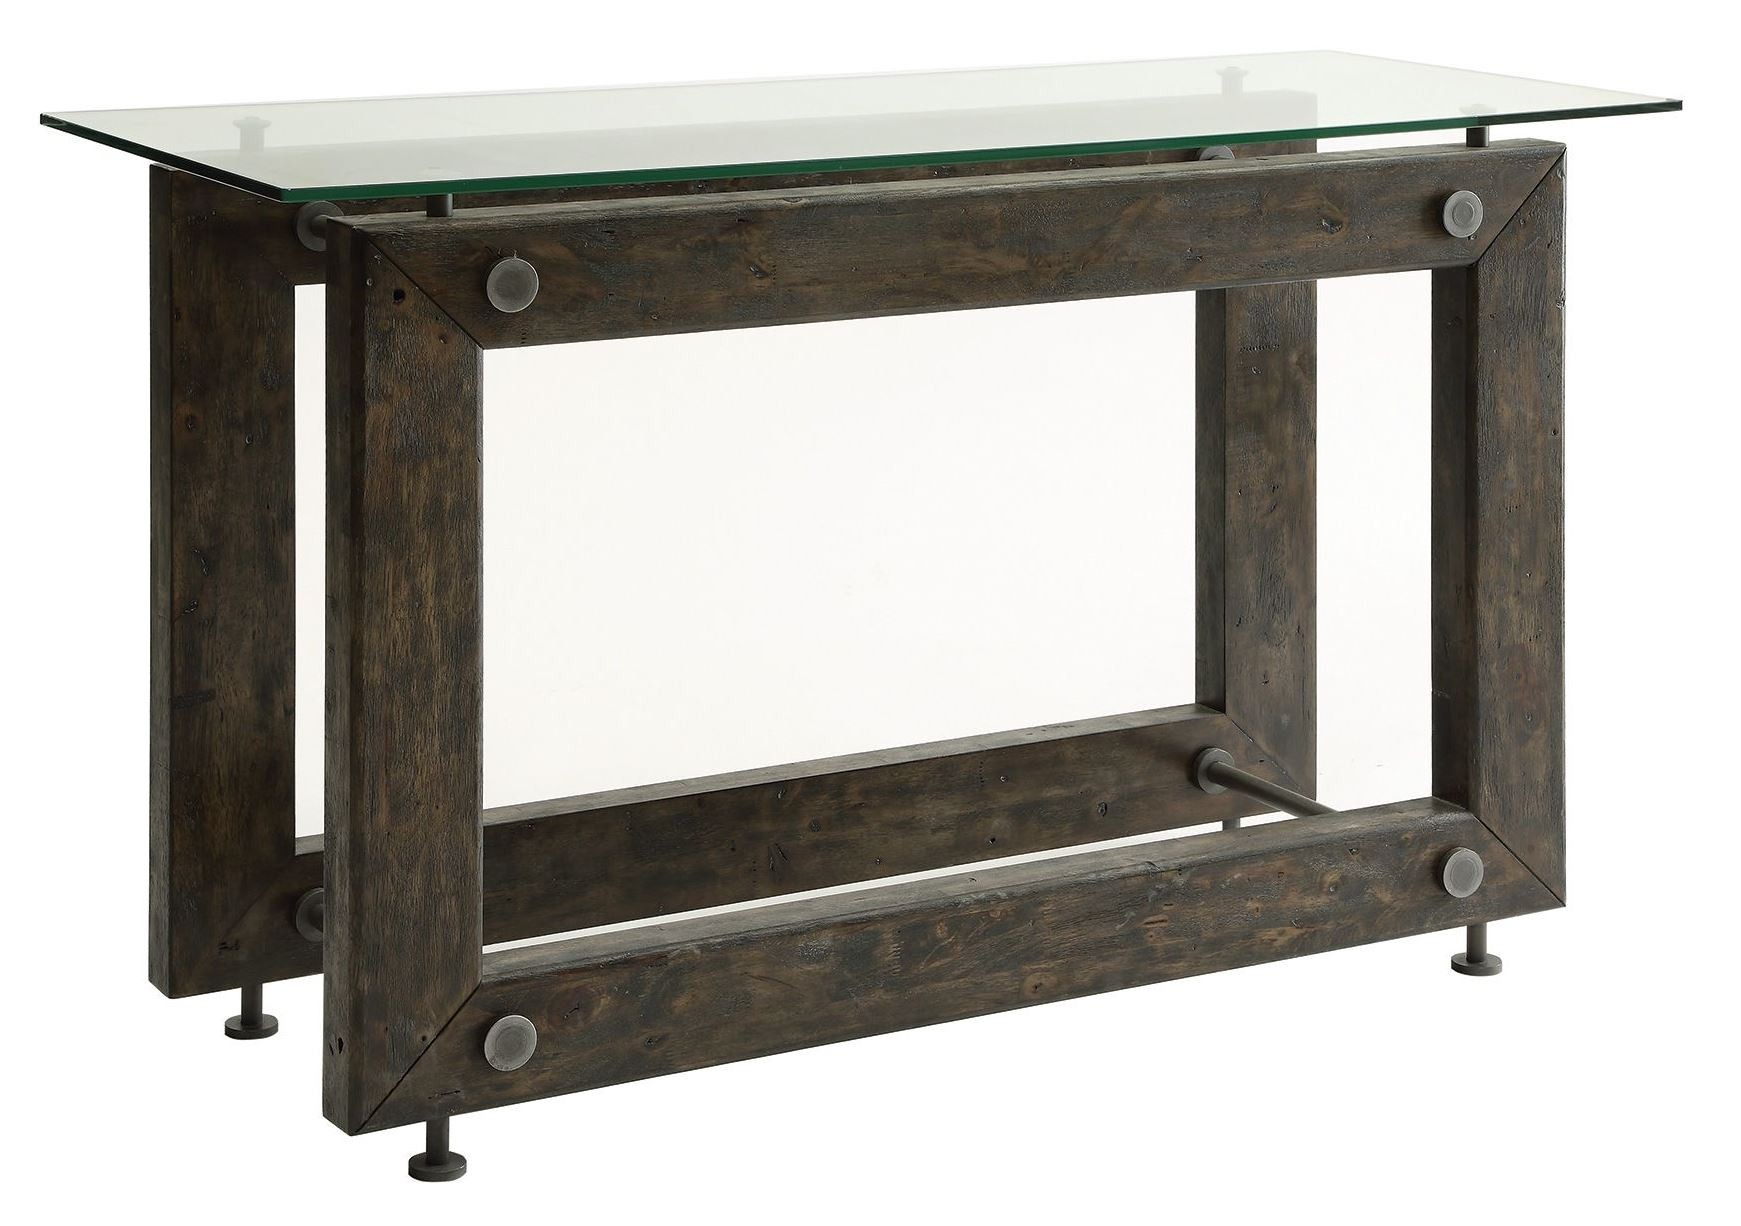 Tempered glass top sofa table from coaster 704279 for Sofa table glass